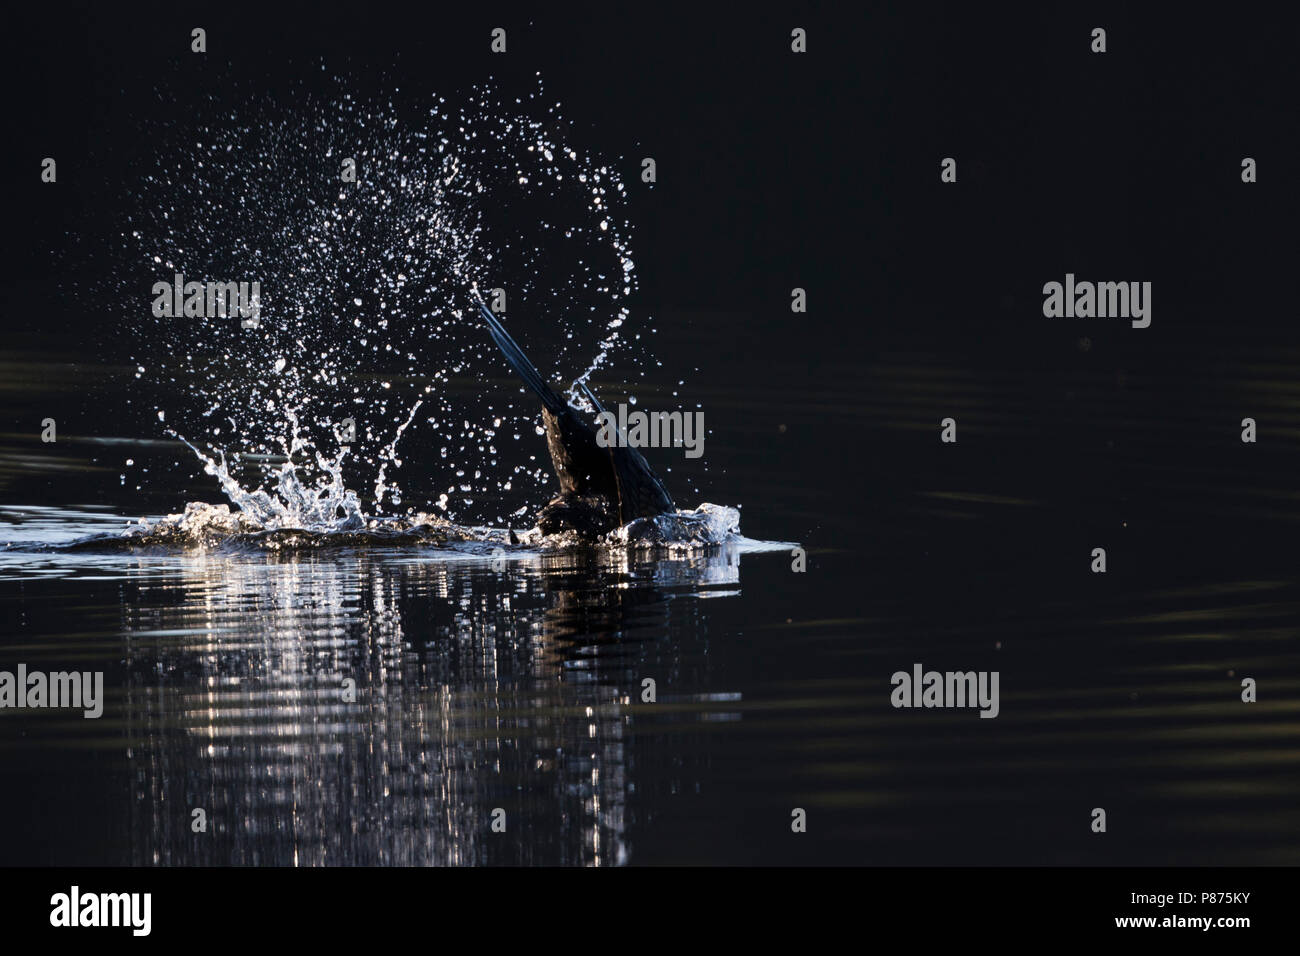 Common Great Cormorant - Kormoran - Phalacrocorax carbo ssp. sinensis, Great Britain diving for food - Stock Image